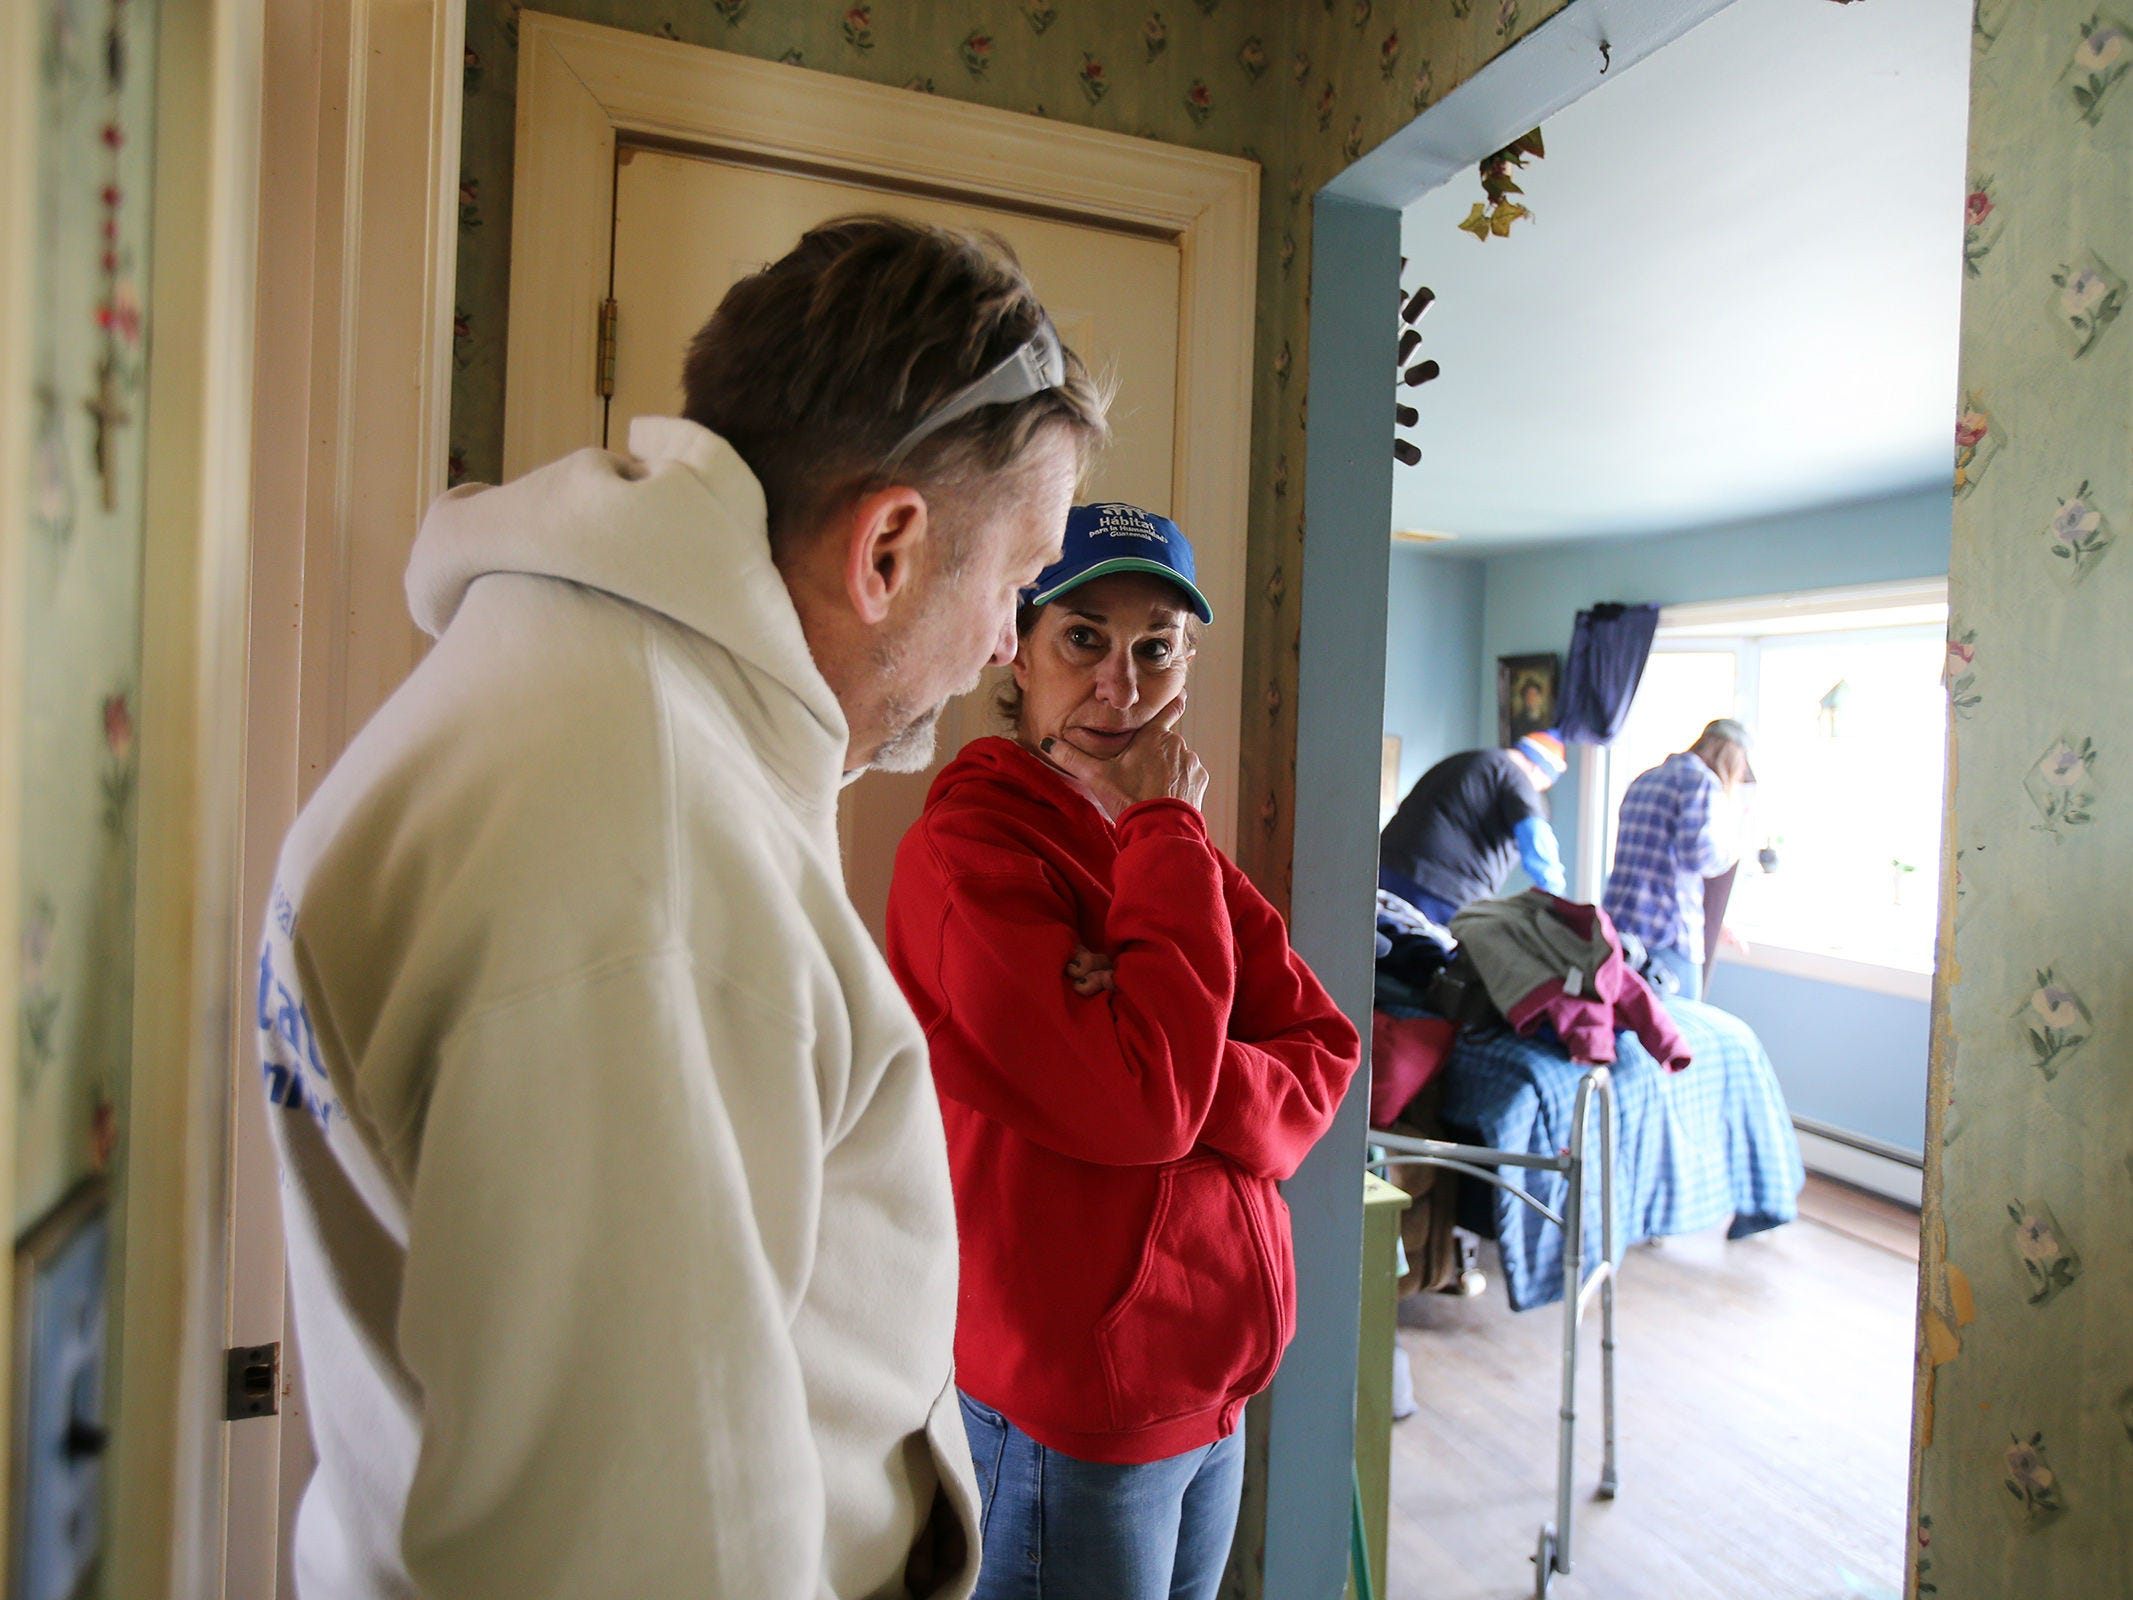 Bob Conway of Whiting, construction supervisor, and Suzan Fichtner, executive director, discuss the progress as volunteers from Northern Ocean Habitat for Humanity work on the home of Korean War veteran Walter Brandon, 85, and wife Patricia in Brick, NJ Thursday, December 6, 2018.  This is Northern Ocean Habitat for Humanity's 200th home repair.